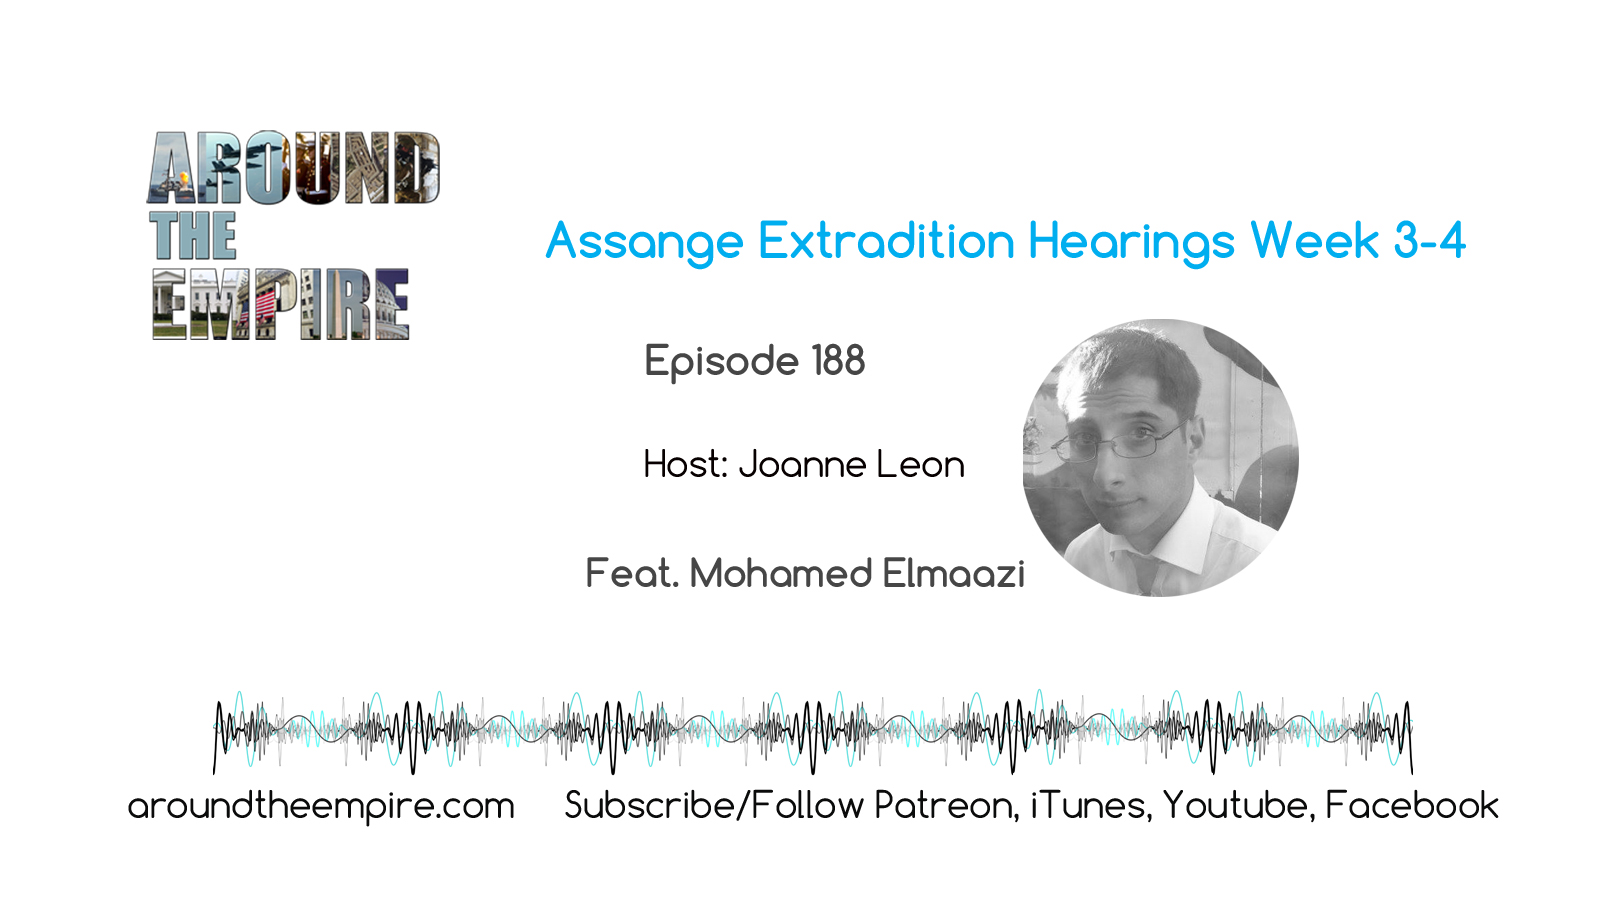 Ep 188 Assange Extradition Hearings Week 3-4 feat Mohamed Elmaazi